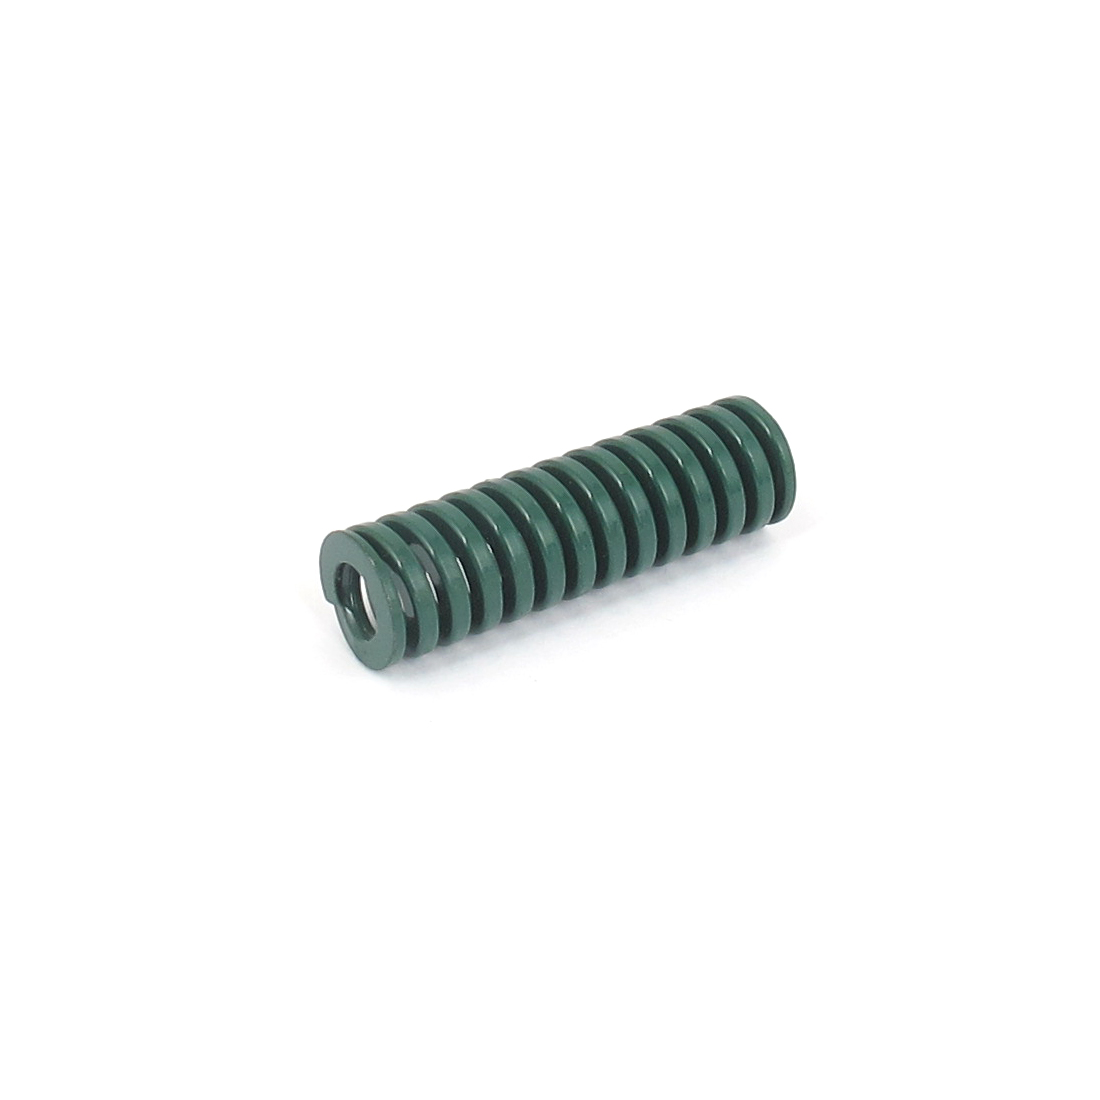 12mmx40mm Chromium Alloy Steel Heavy Load Die Spring Green